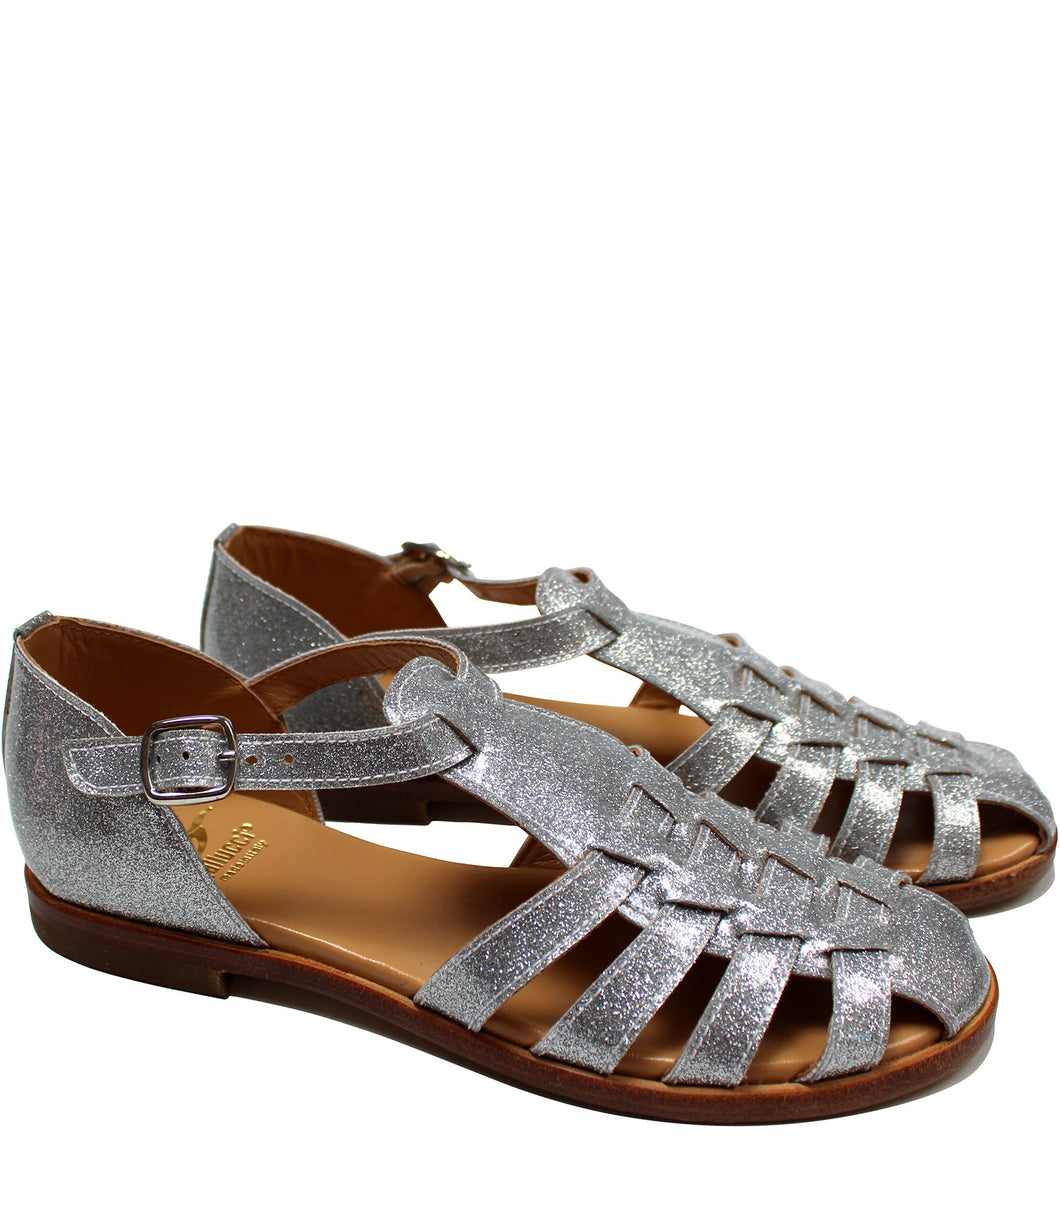 Glitter sandals in silver leather